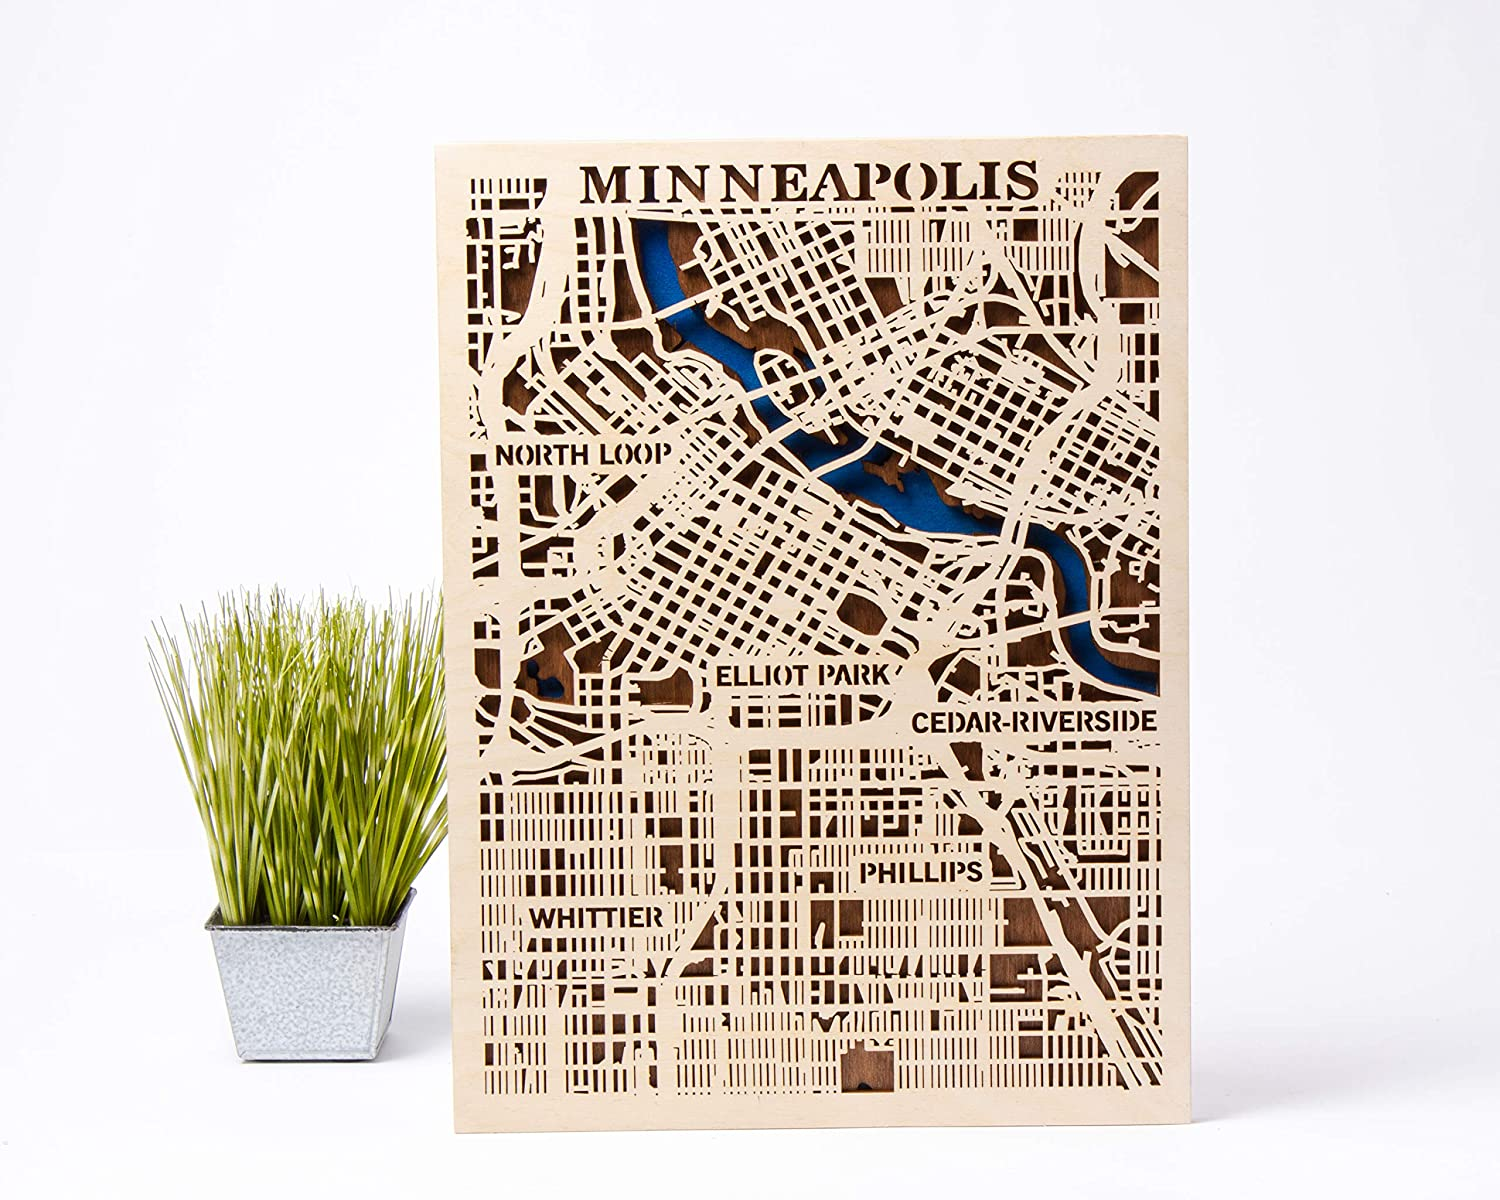 Minneapolis Wooden Map Xmas Gift for Girl Small Scale Map Gift Birthday Gift for Man 3D Wooden City Map USA Wall Art Minneapolis Wooden Decor City Wooden Map Minneapolis 3D Wooden Map (Large)